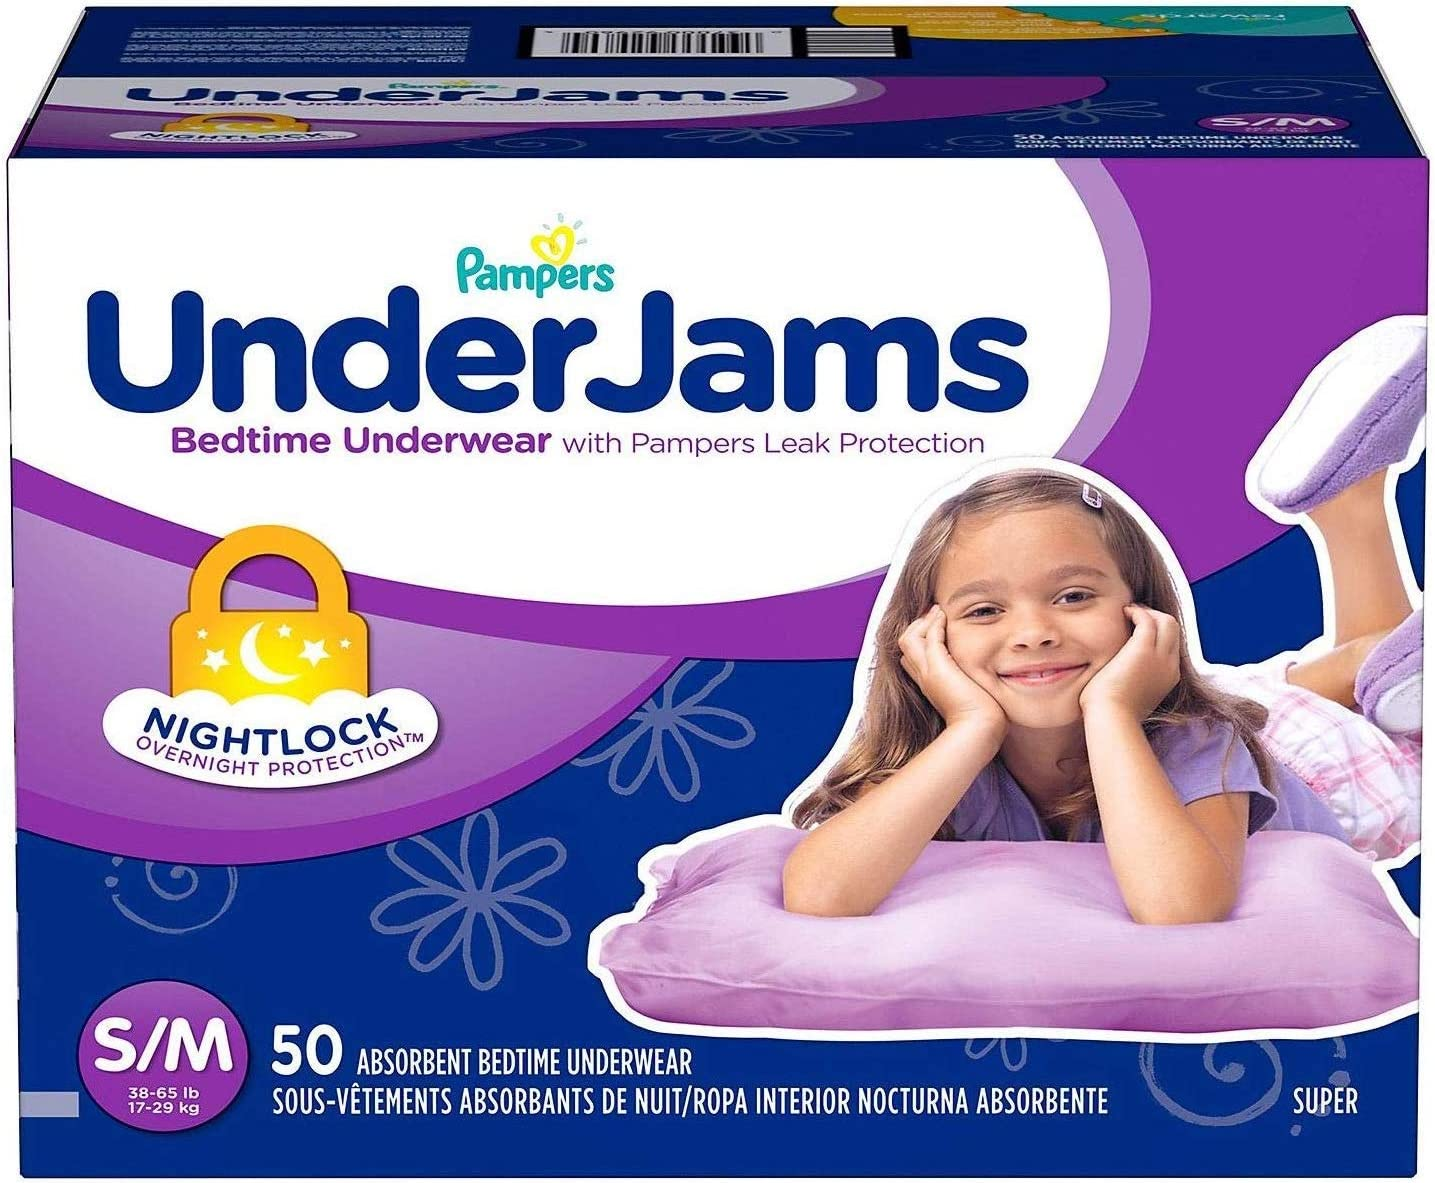 Pampers UnderJams Disposable Bedtime Underwear for Girls Size L//XL 42 Count